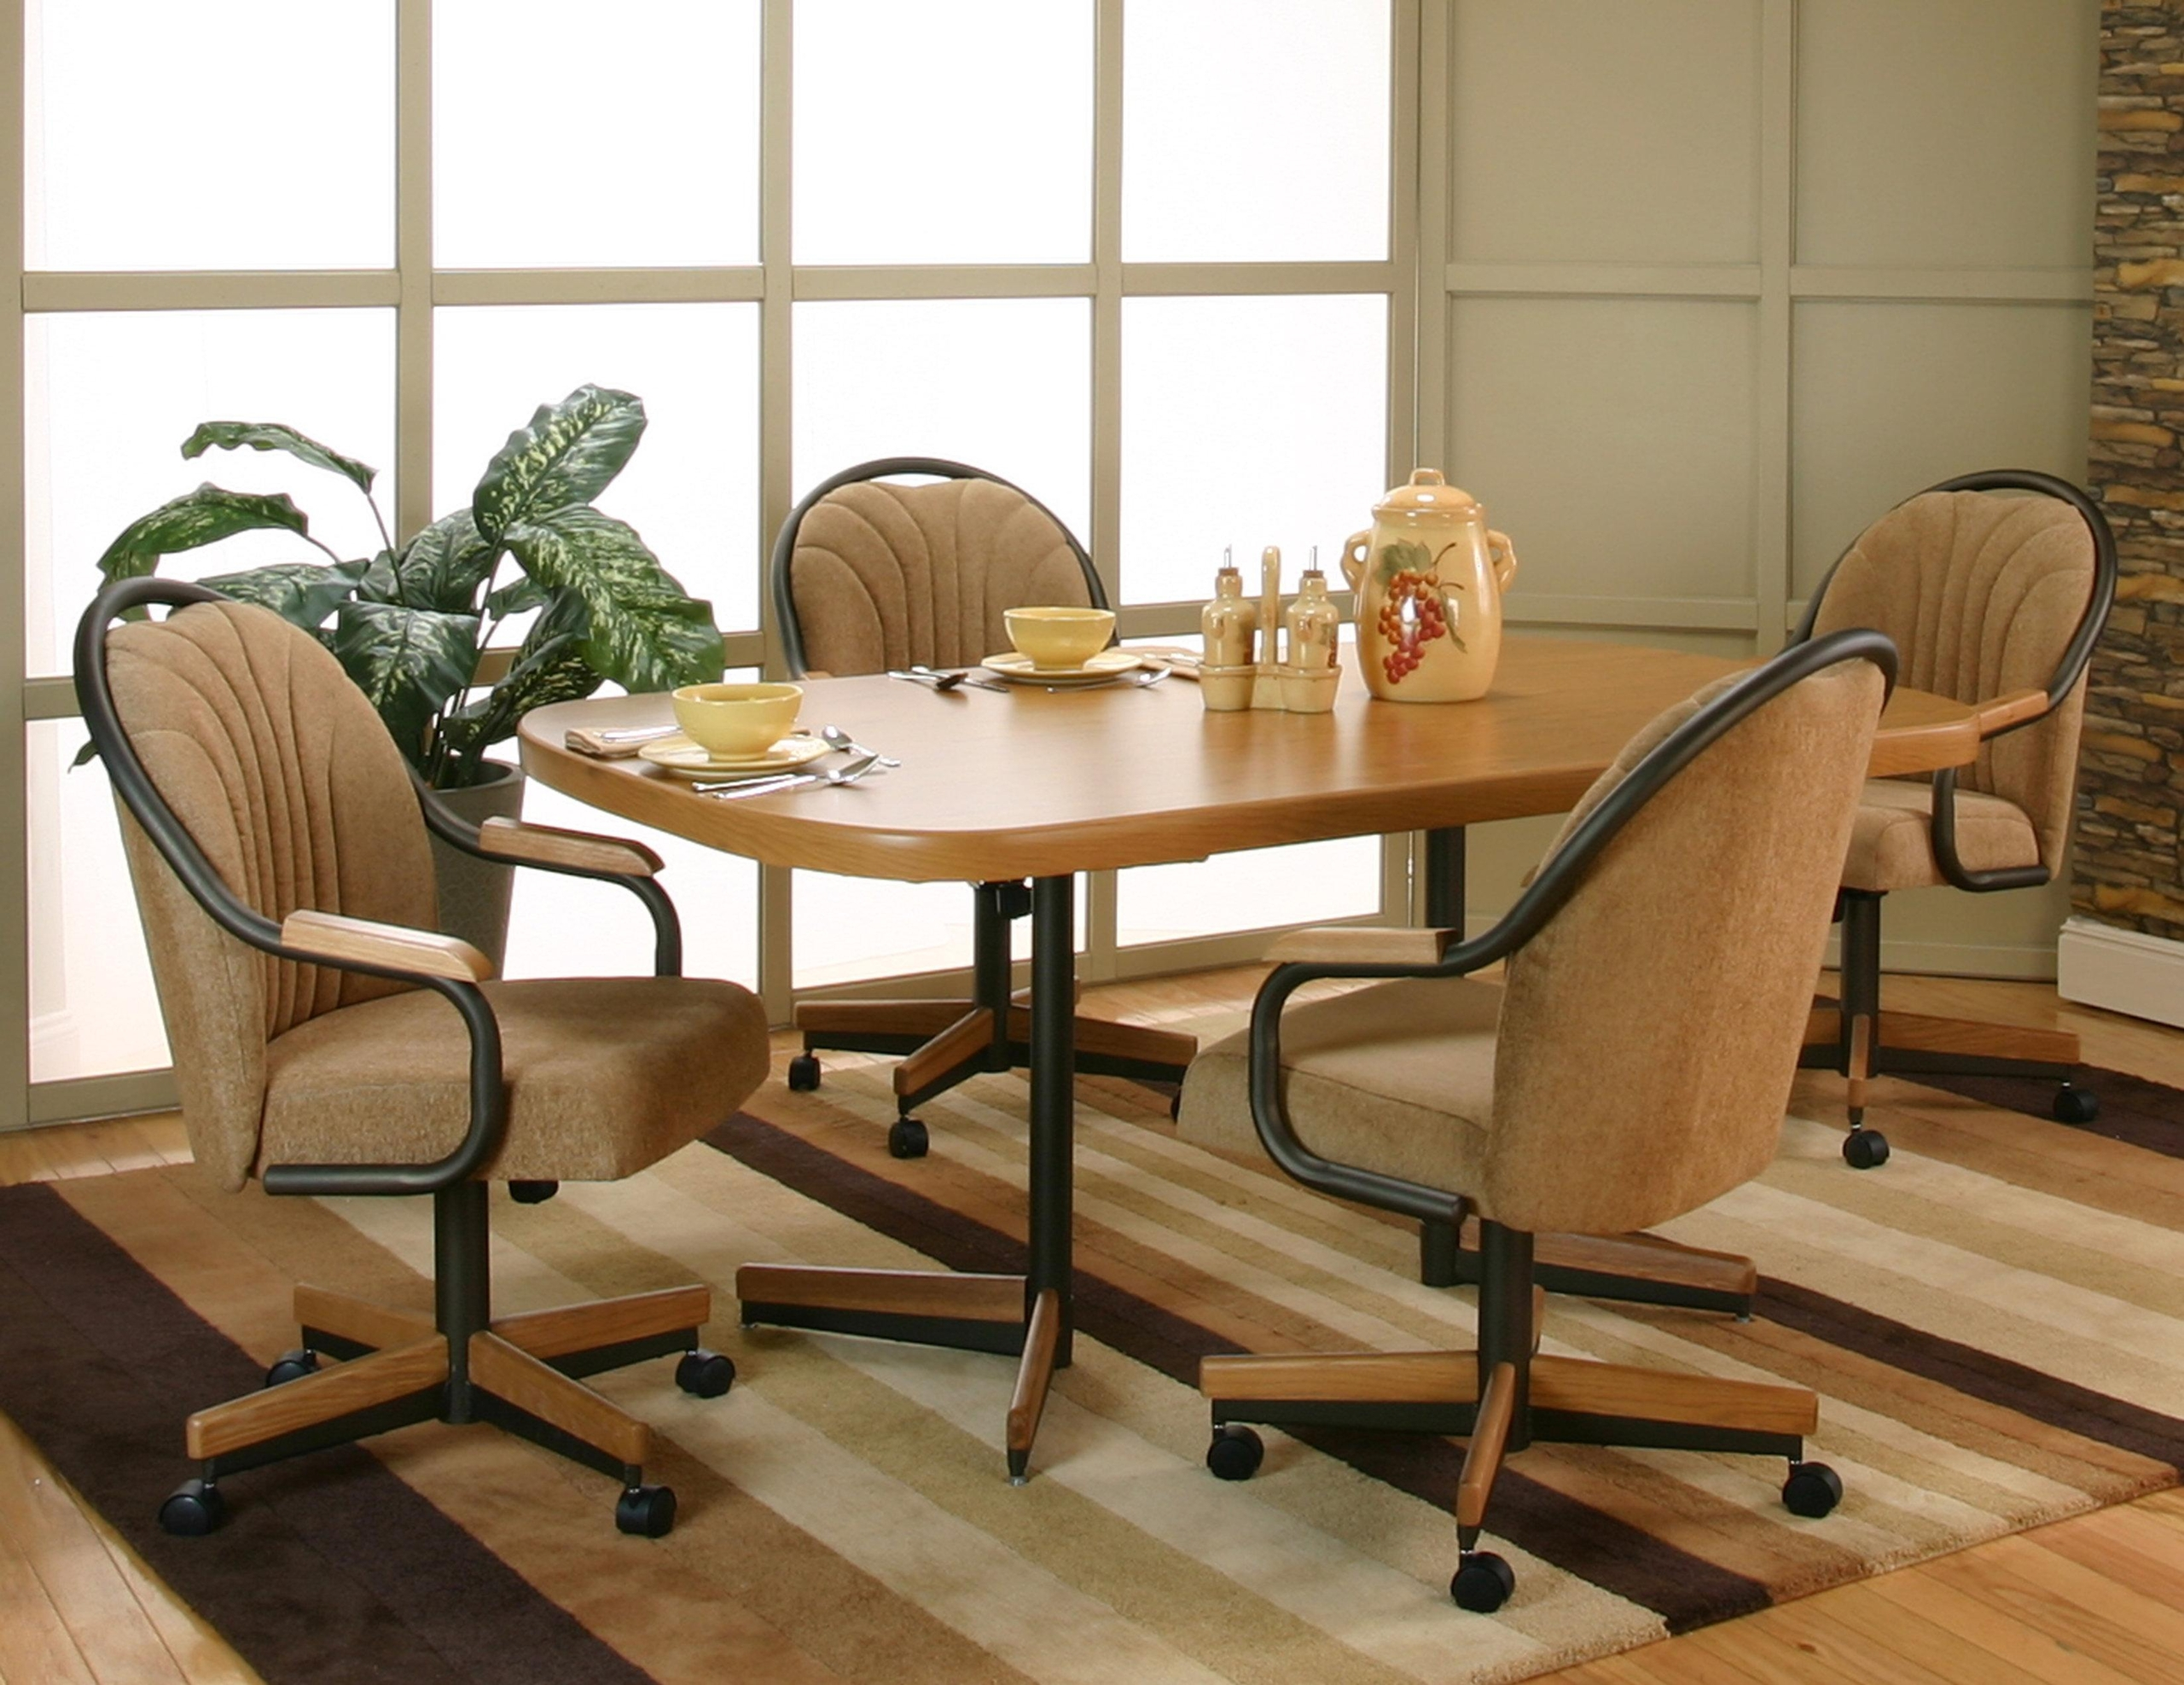 Set of 9 Kitchen Chairs with Casters You'll Love in 9   VisualHunt